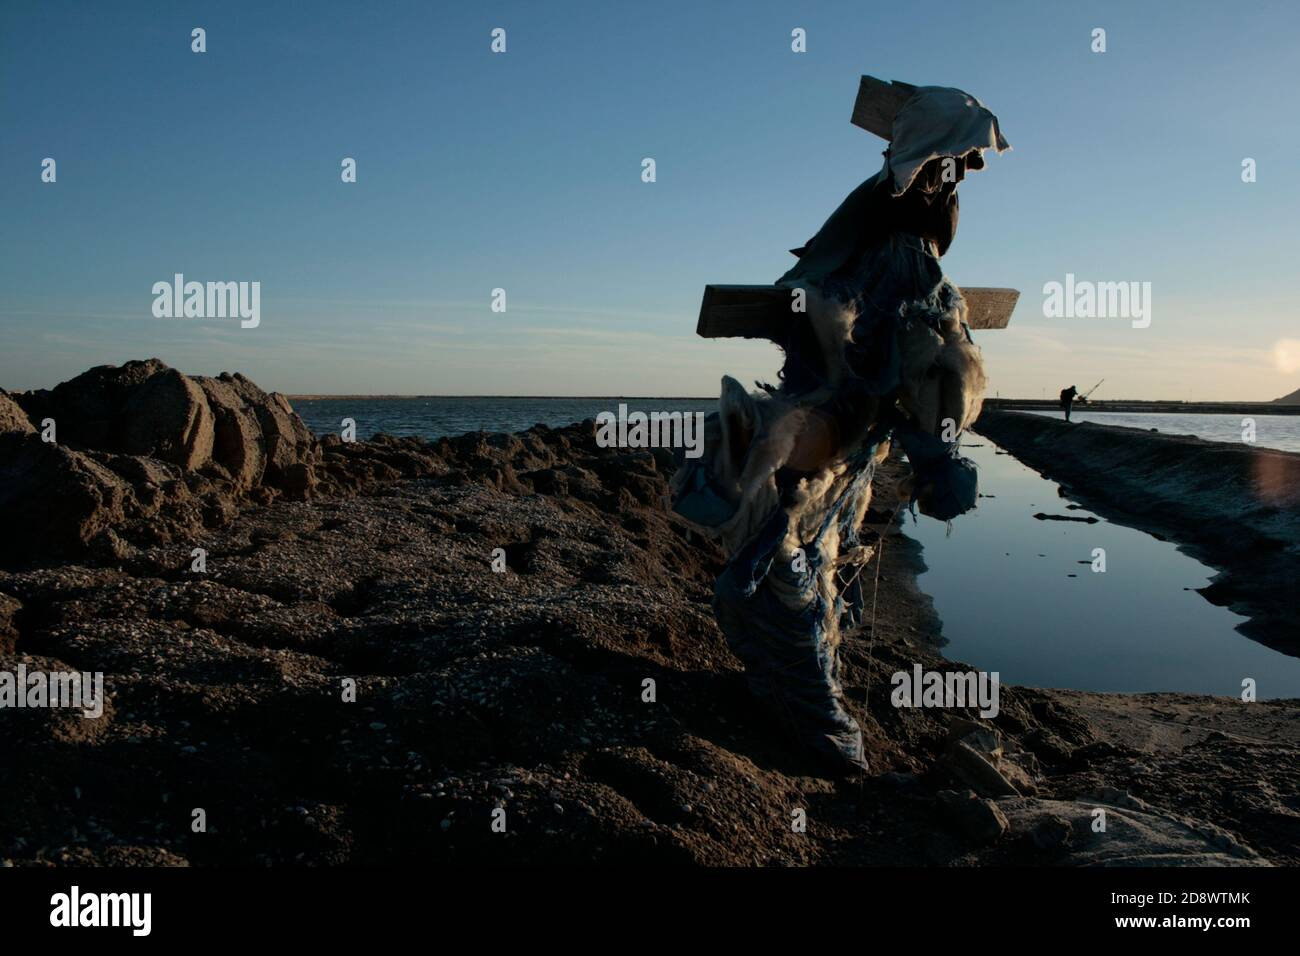 The scarecrow of Sfax saline with sunset winter and blue sky reflection on water. Tunisia Stock Photo